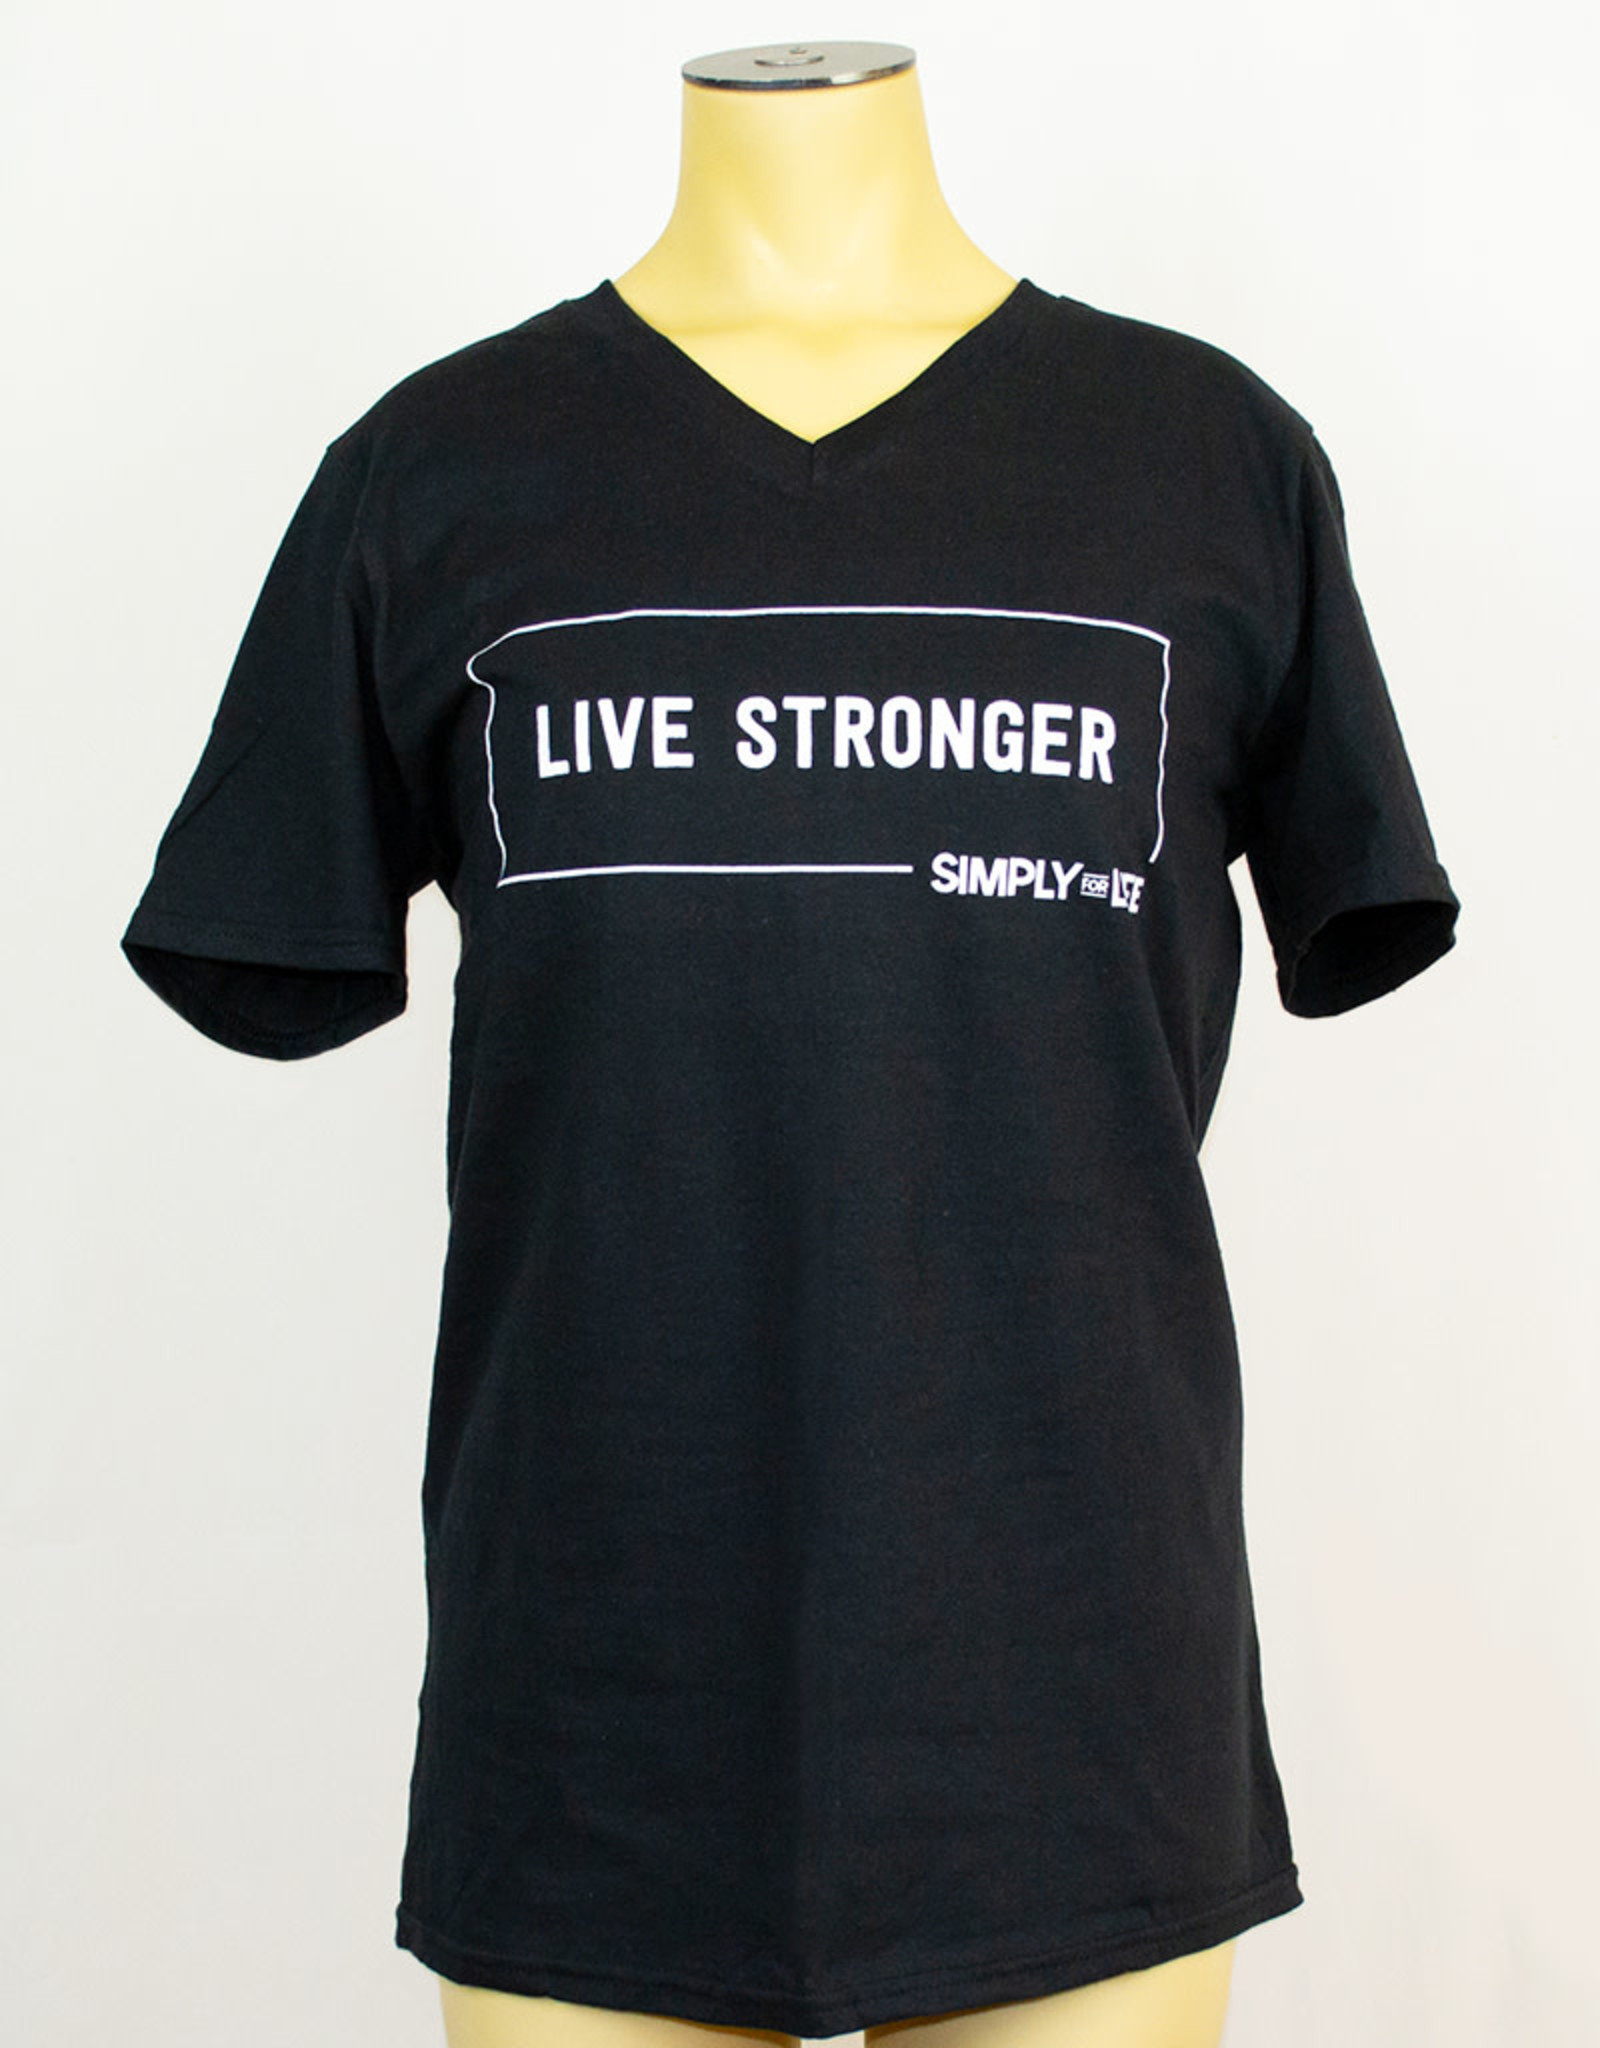 Simply For Life SFL - T-Shirts, Vneck